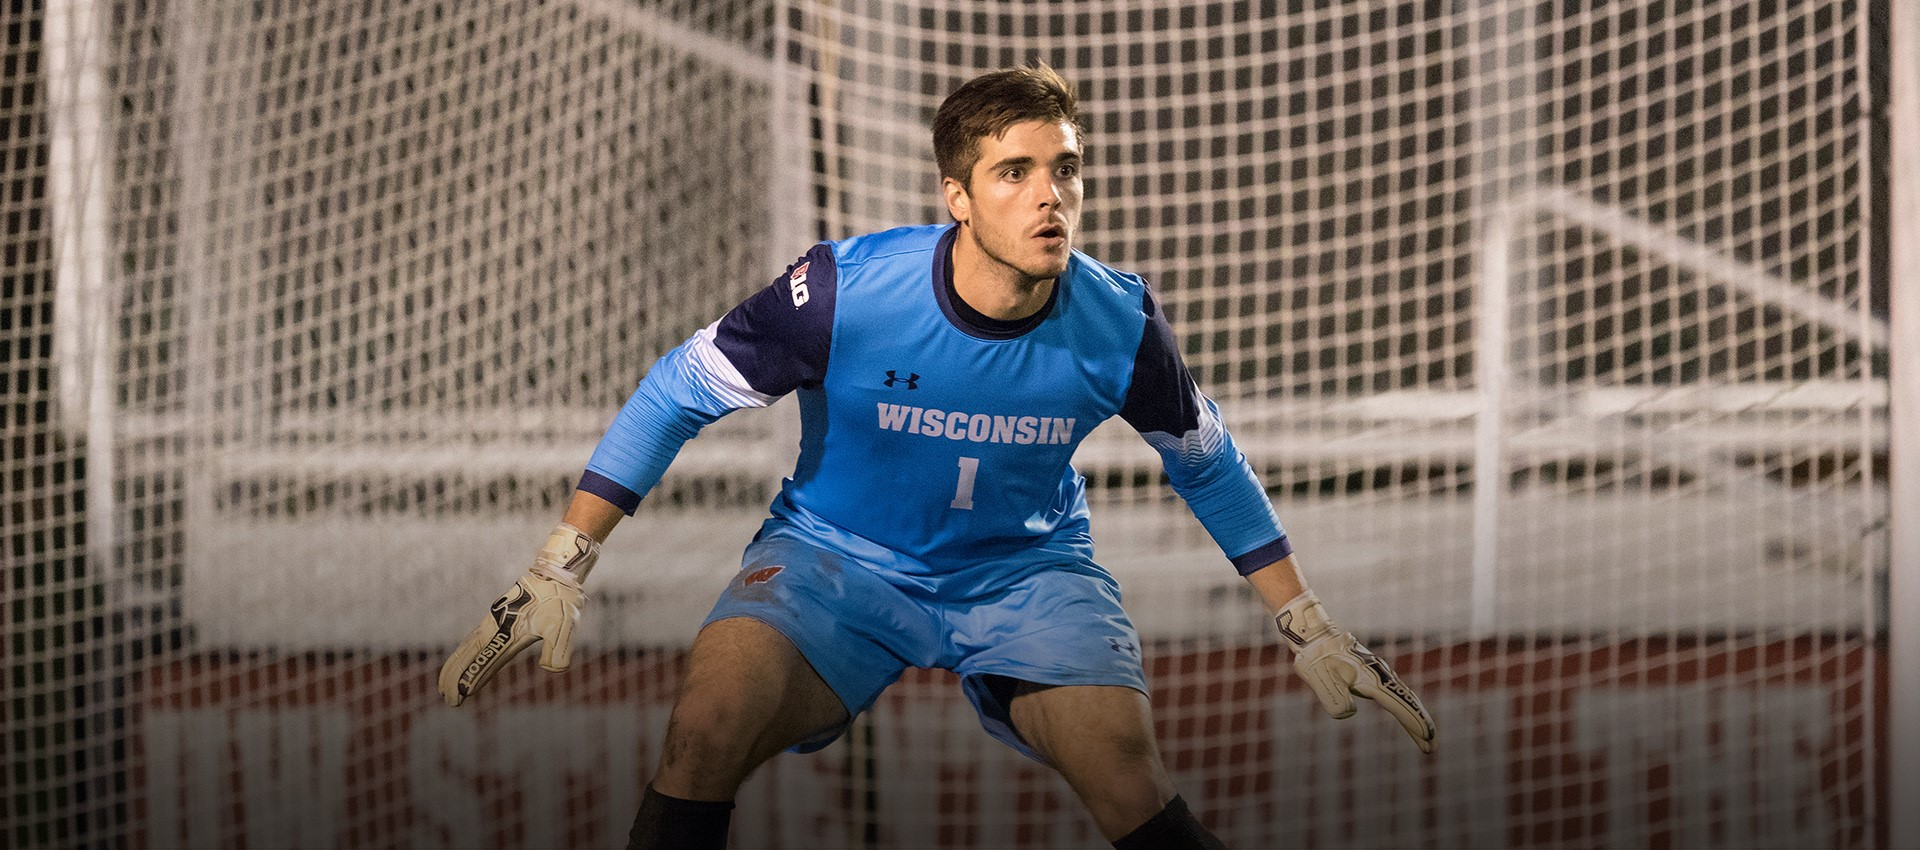 casey beyers men s soccer wisconsin athletics